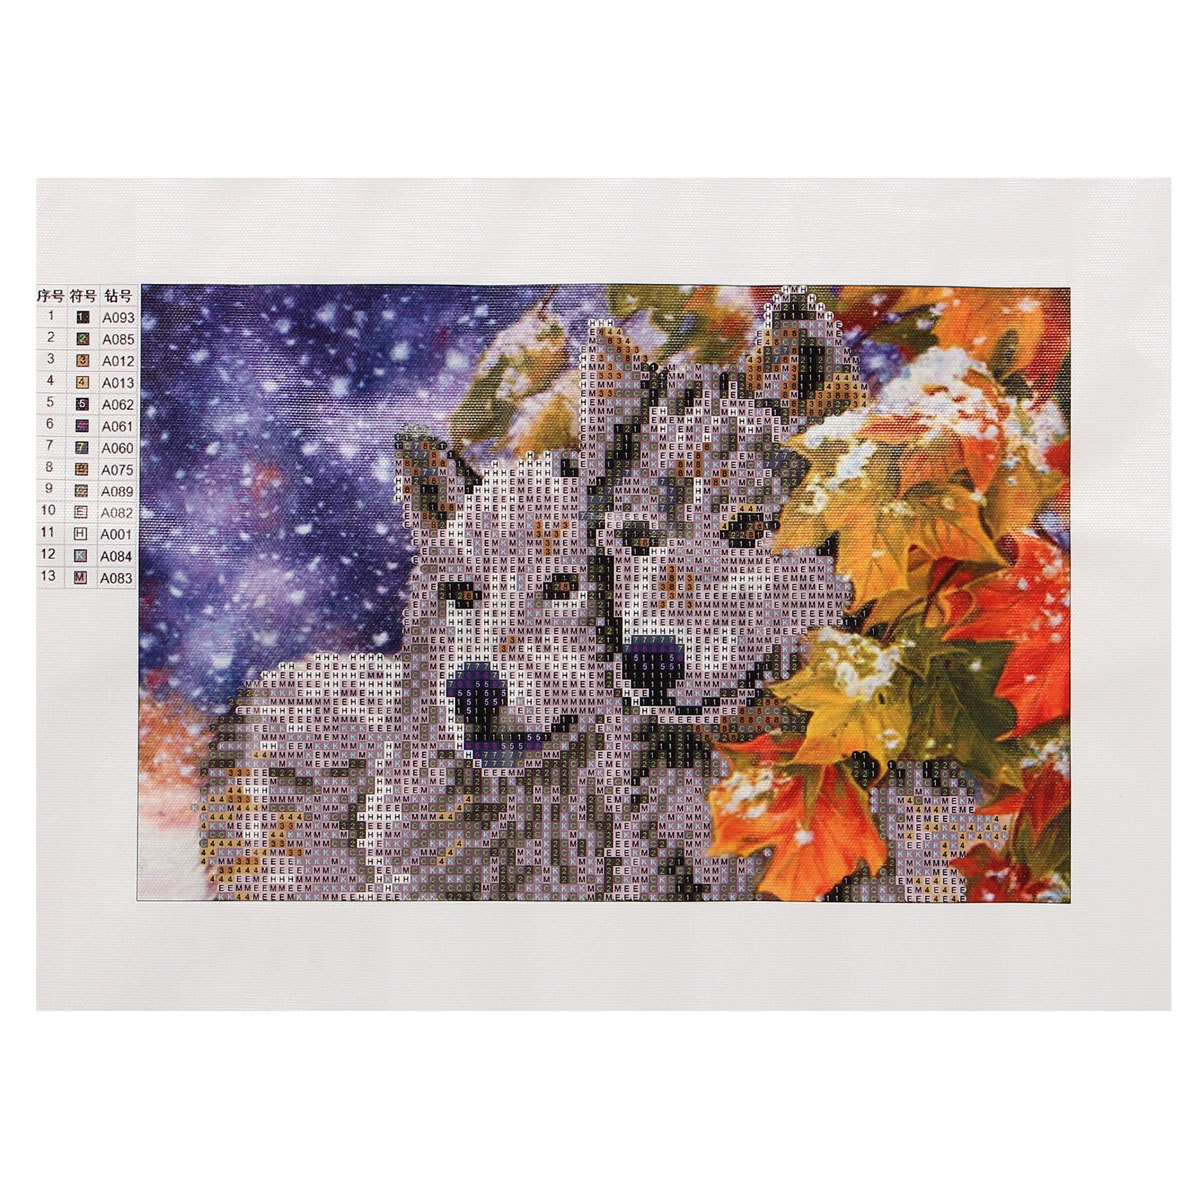 5d Diy Diamond Painting Wolf Tiger Cat Embroider Cross Stitch Home Decor Craft Ebay